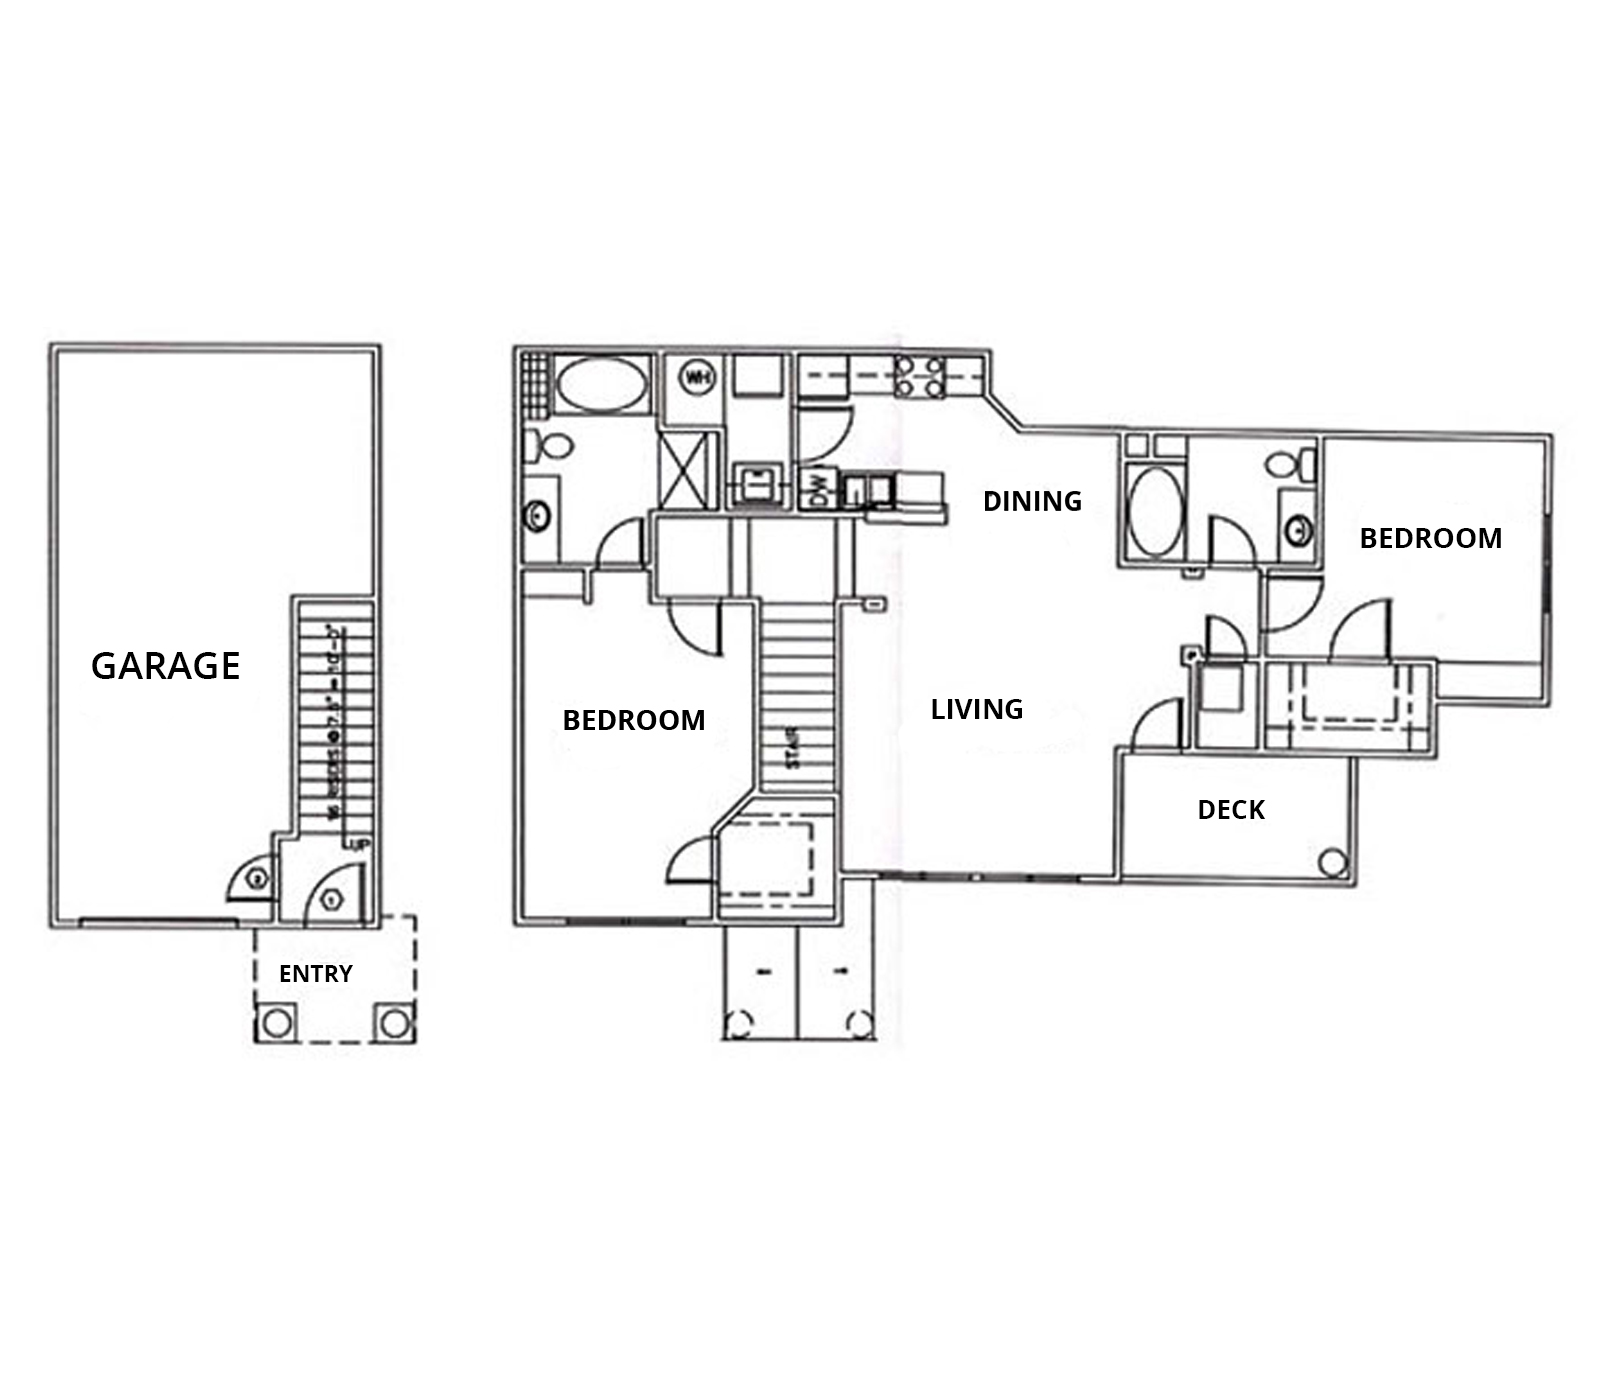 2 Bedrooms, 2 Baths, Over-sized Car Garage